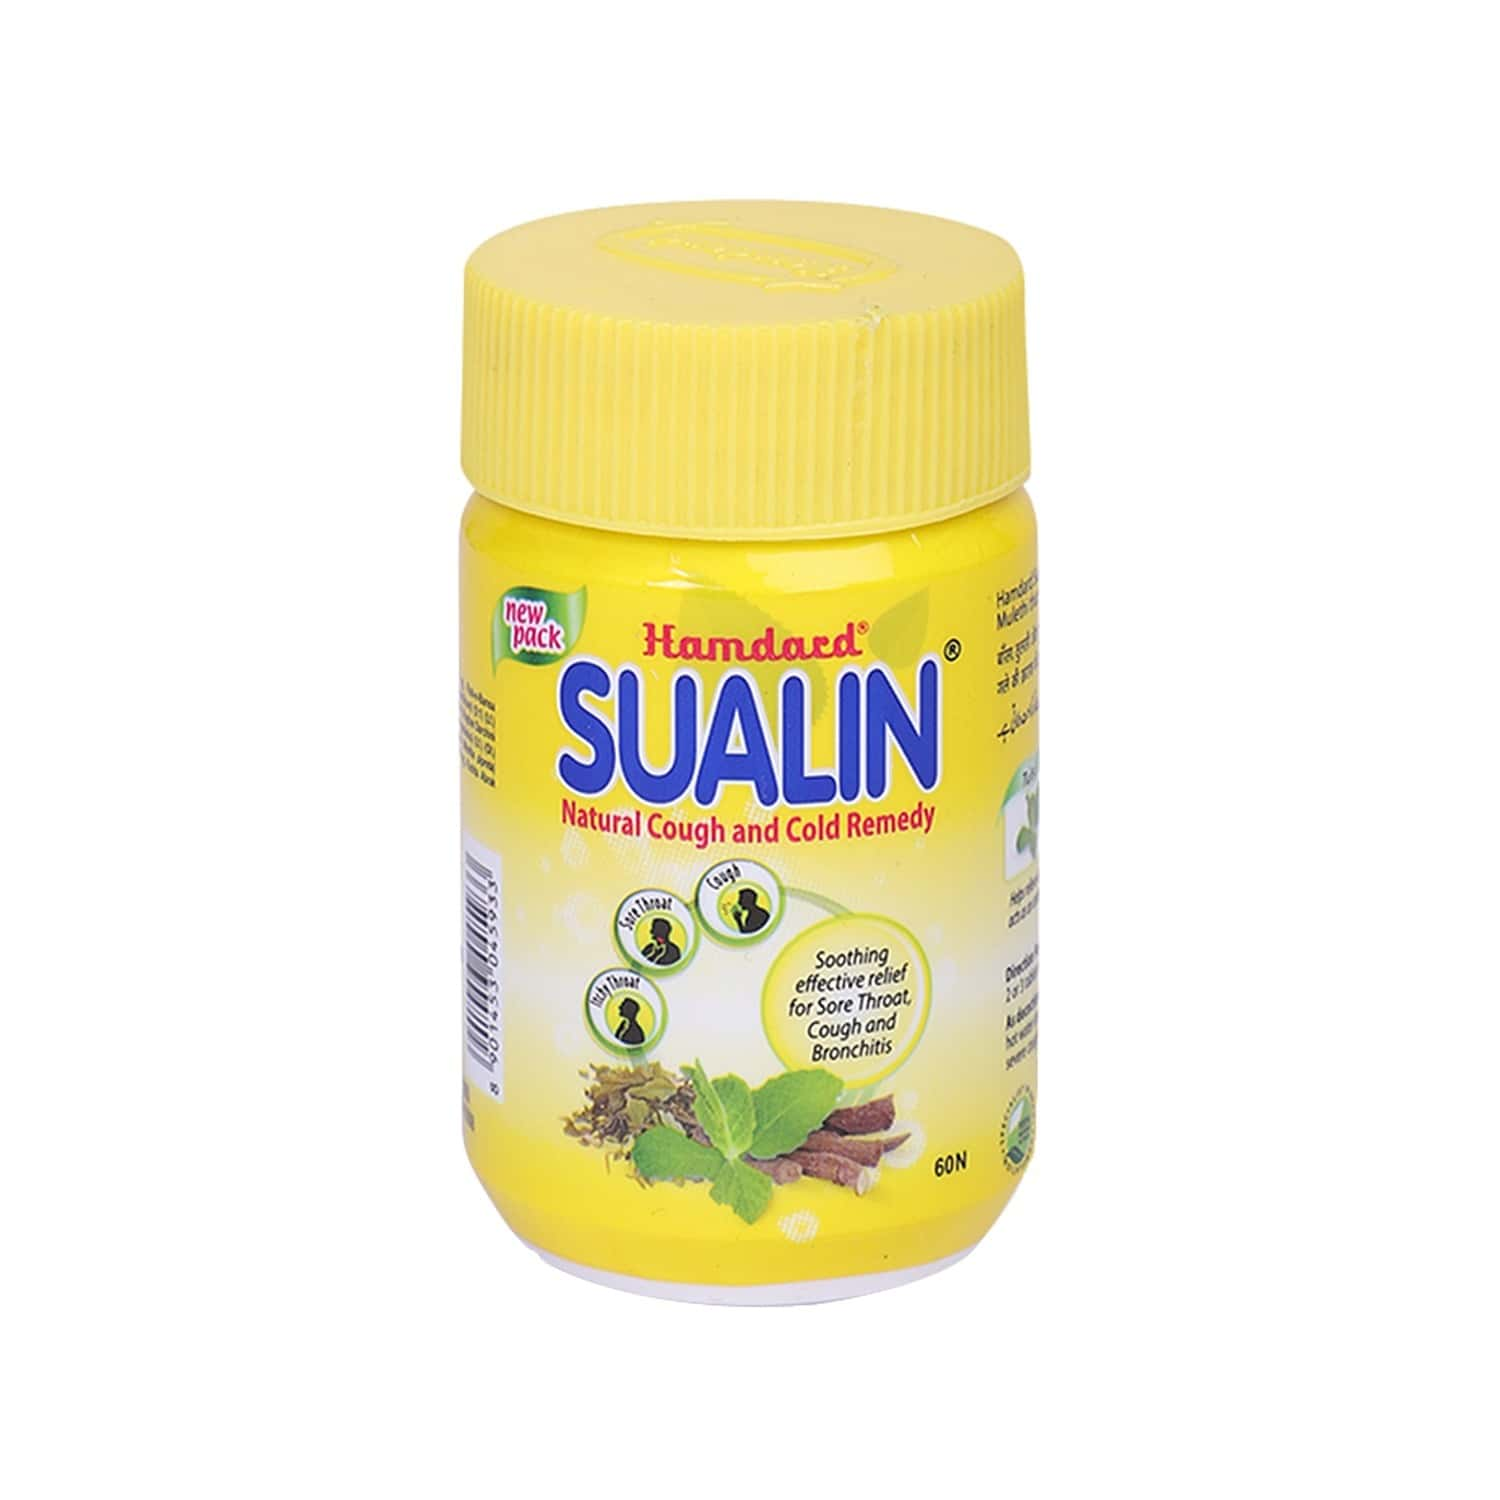 Hamdard Sualin Natural Cough And Cold Remedy - 60 Tablets